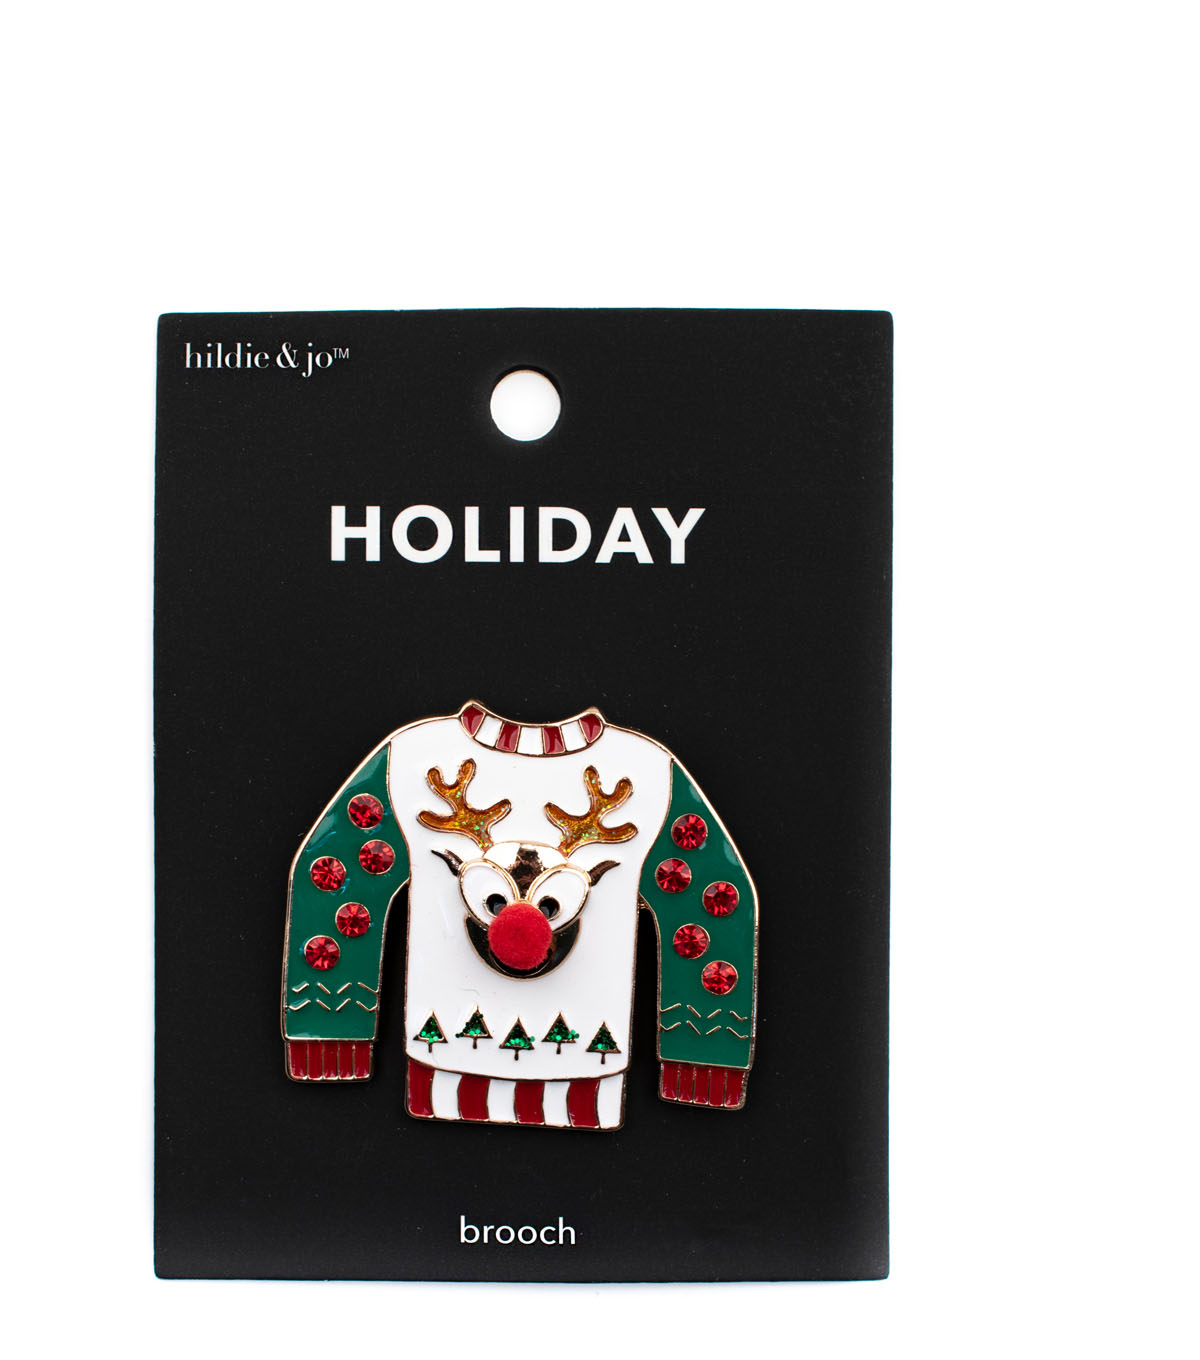 hildie & jo Holiday Pin-Ugly Sweater